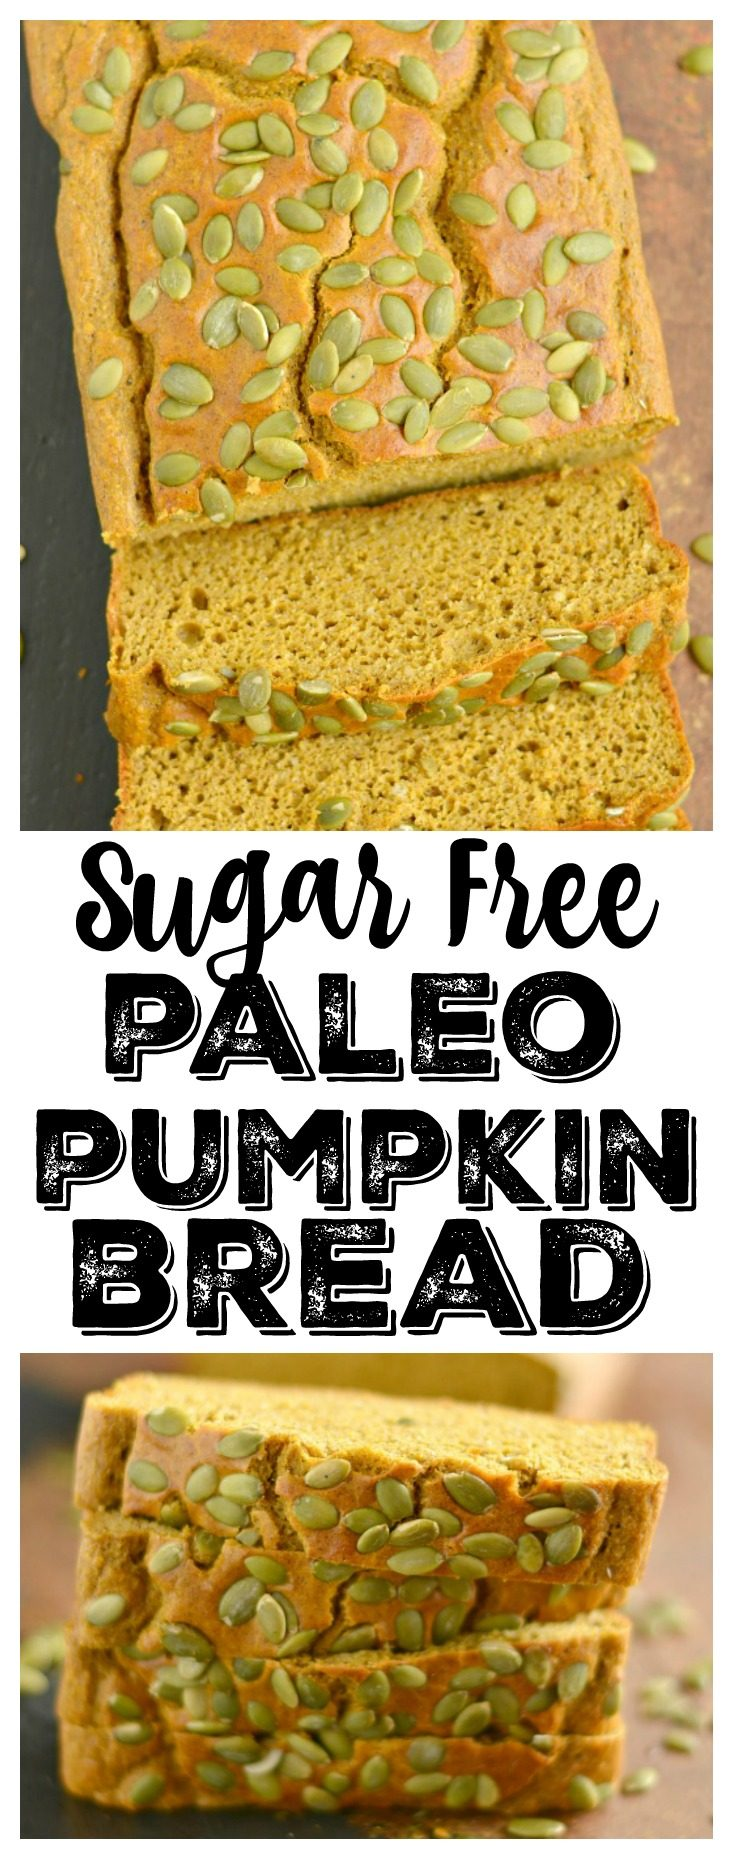 Wholesome & healthy Sugar Free Pumpkin Bread! A moist & flavorful bread that's thick & hearty. Perfect for breakfast, sandwiches, or an anytime snack.Gluten Free + Low Calorie + Paleo